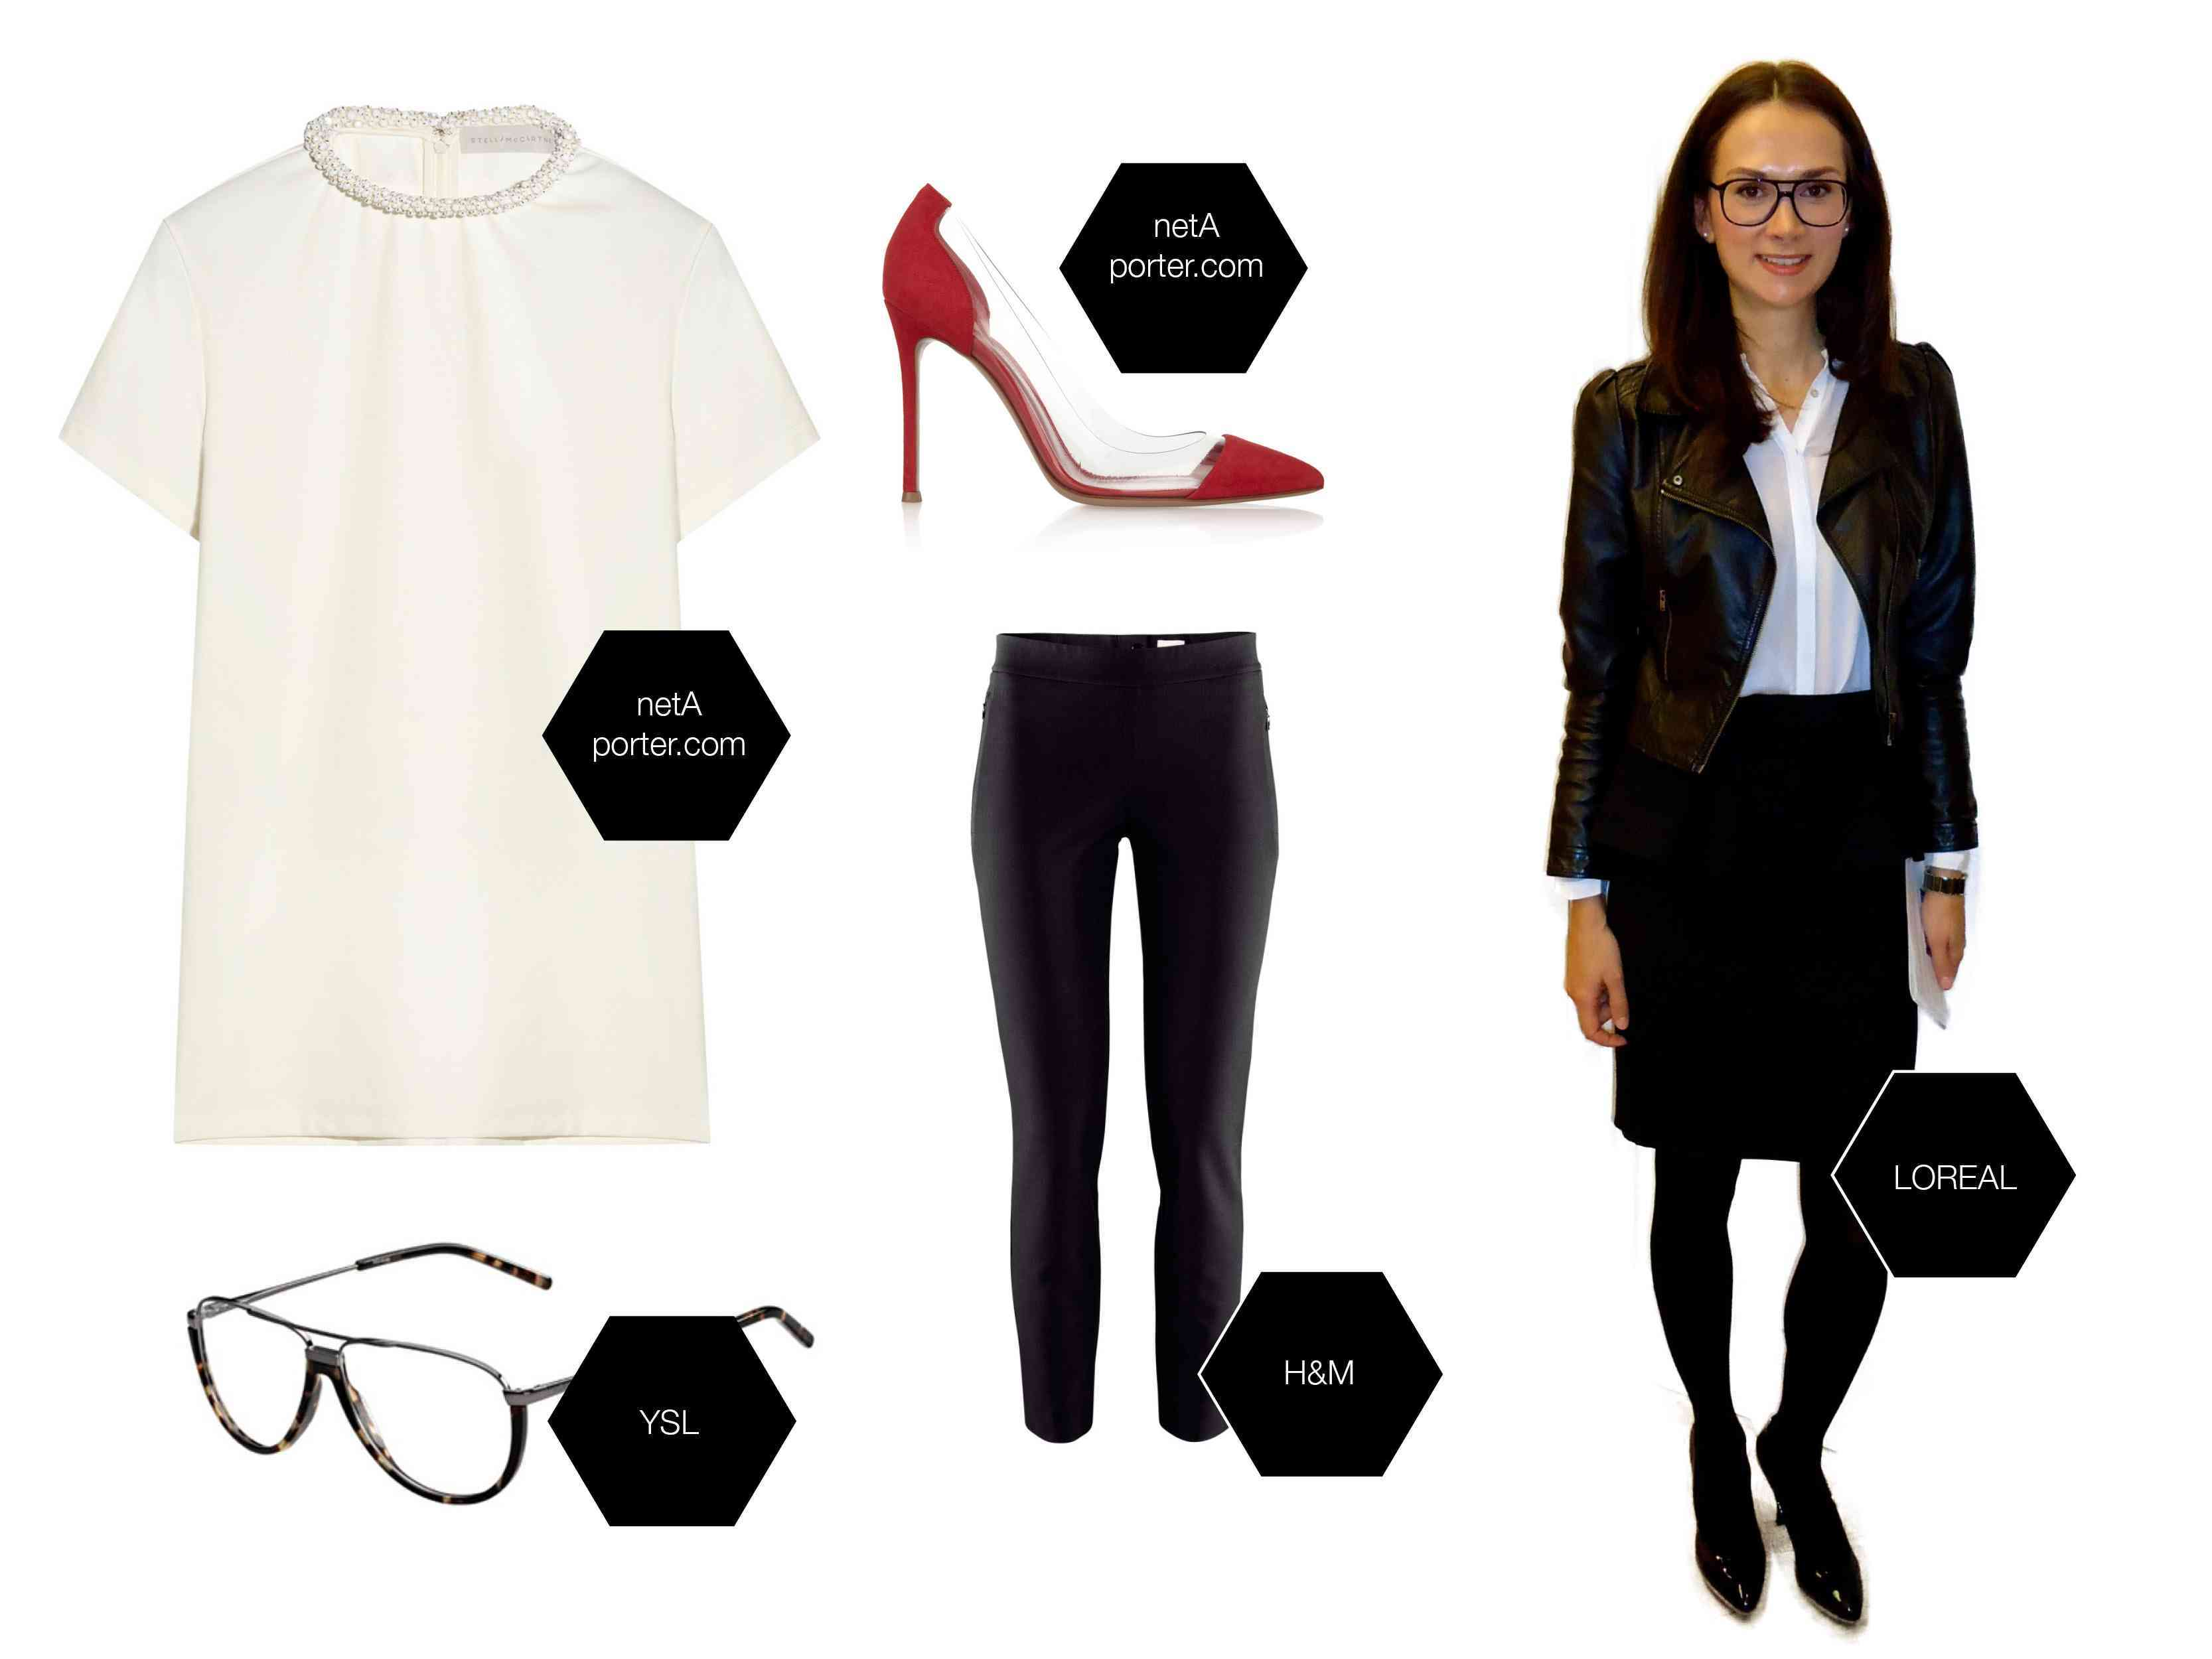 Fantastic Gallery Images And Information Formal Dress Code For Women In Office